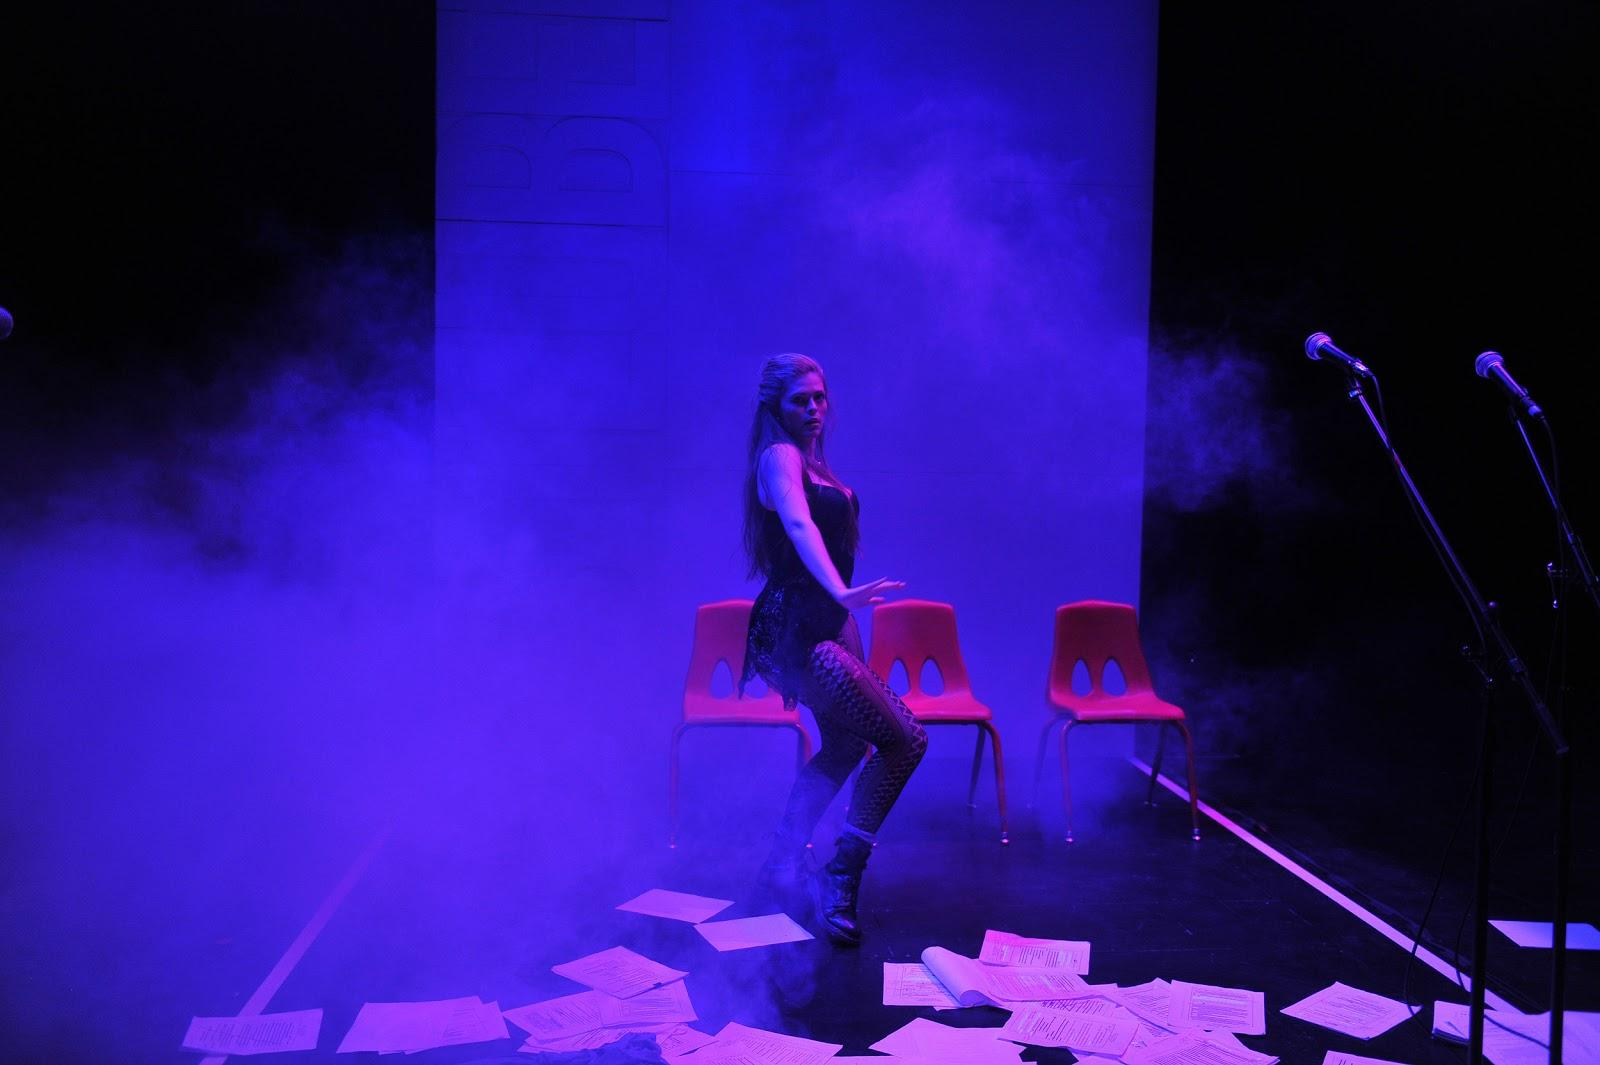 performer in foggy blue light dancing in front of chairs